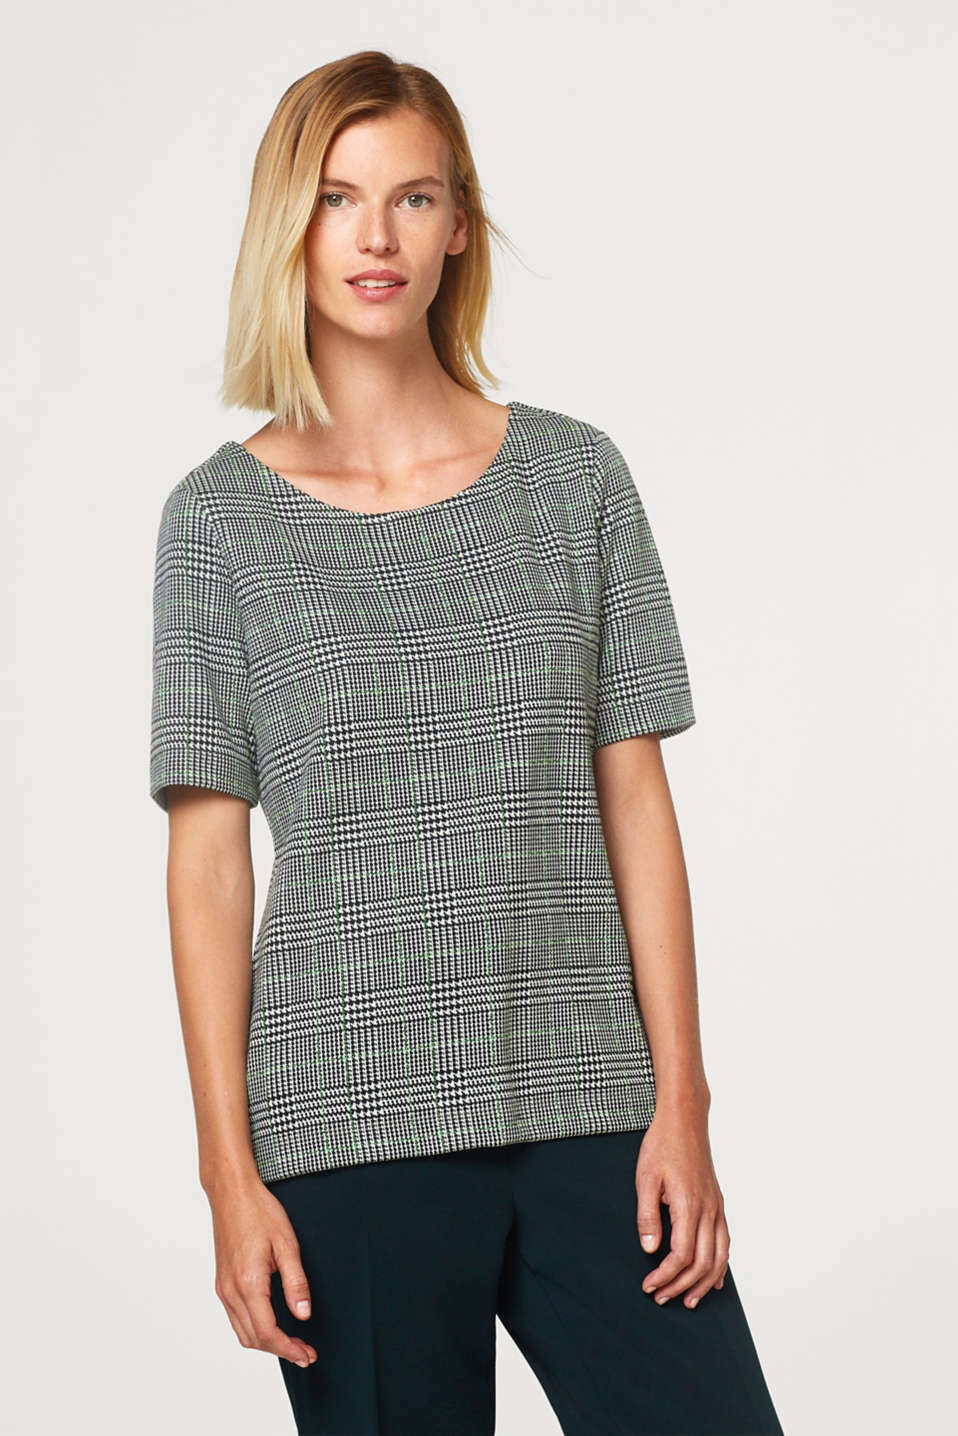 Esprit - Jersey T-shirt with a glencheck pattern